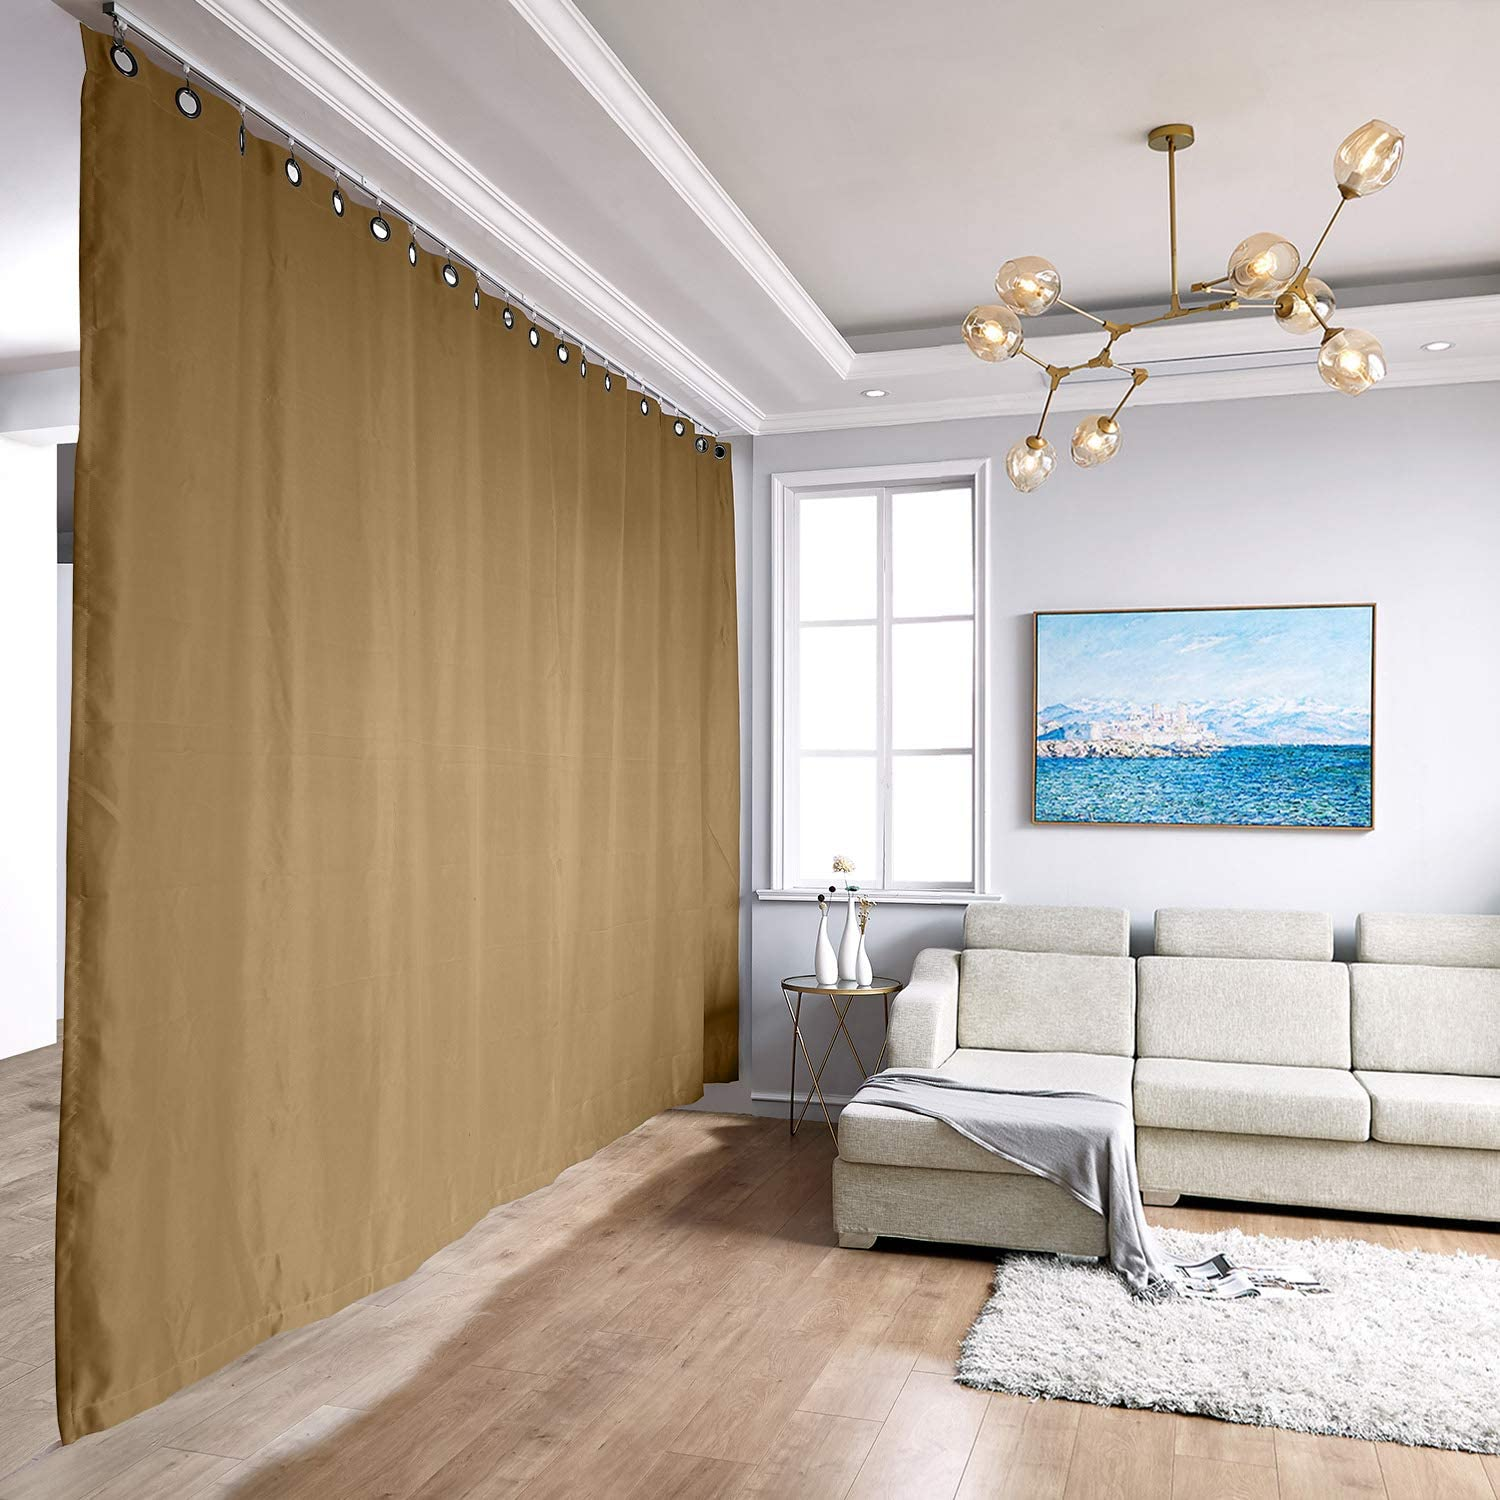 TWOPAGES Room Divider Curtain Memphis Mall Ceiling xx-Large 12f Kit Max 71% OFF A Track